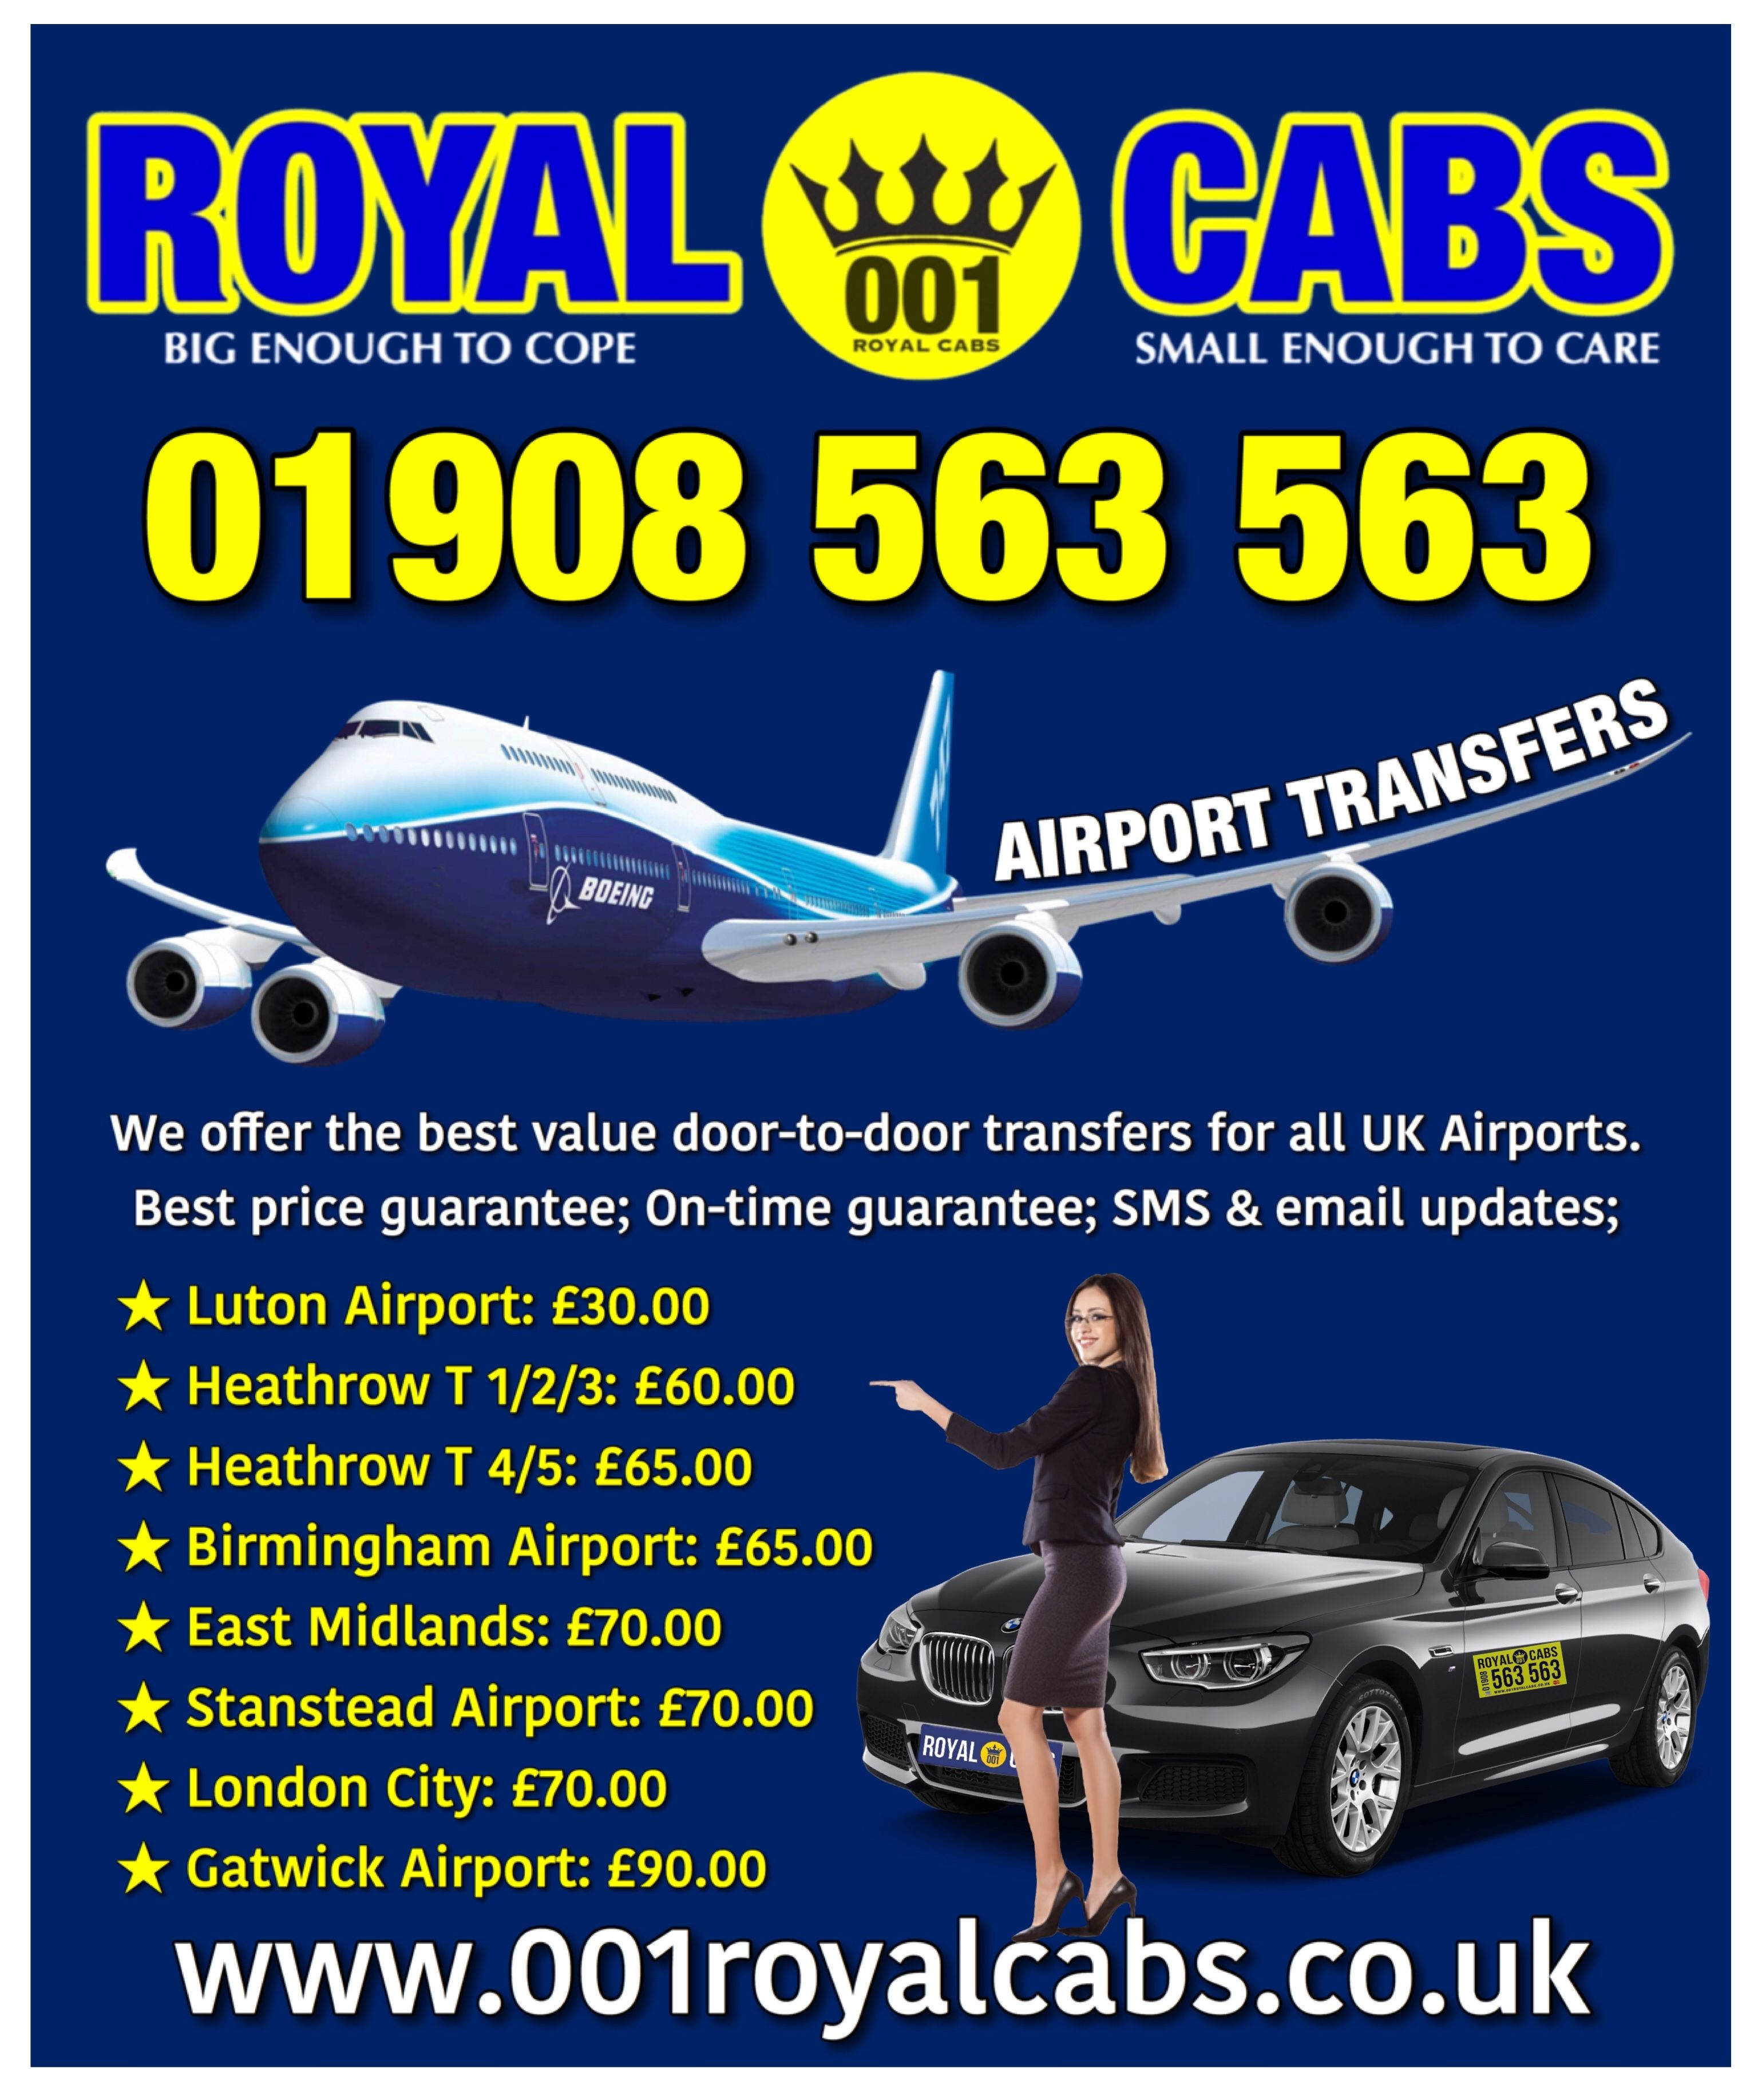 001 ROYAL CABS AIRPORT TRANSFERS We offer the best value door-to-door transfers for all UK Airports. 01908 563 563 .001royalcabs.co.uk #001RoyalCabs ...  sc 1 st  Pinterest & 001 ROYAL CABS AIRPORT TRANSFERS We offer the best value door-to ...